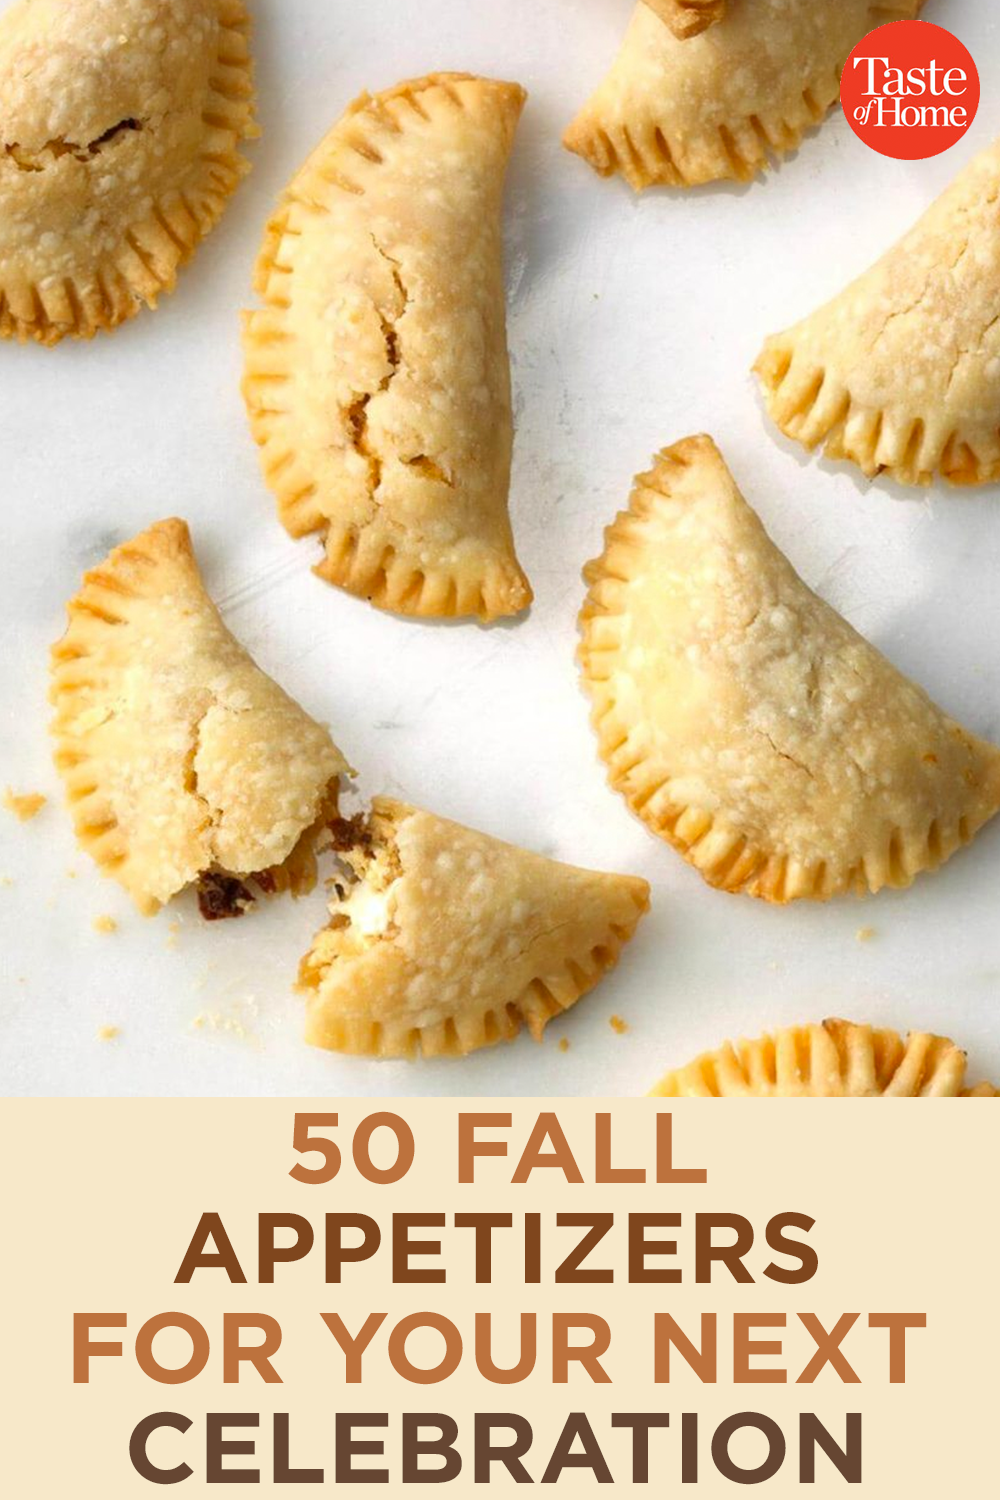 50 Fall Appetizers for Your Next Celebration